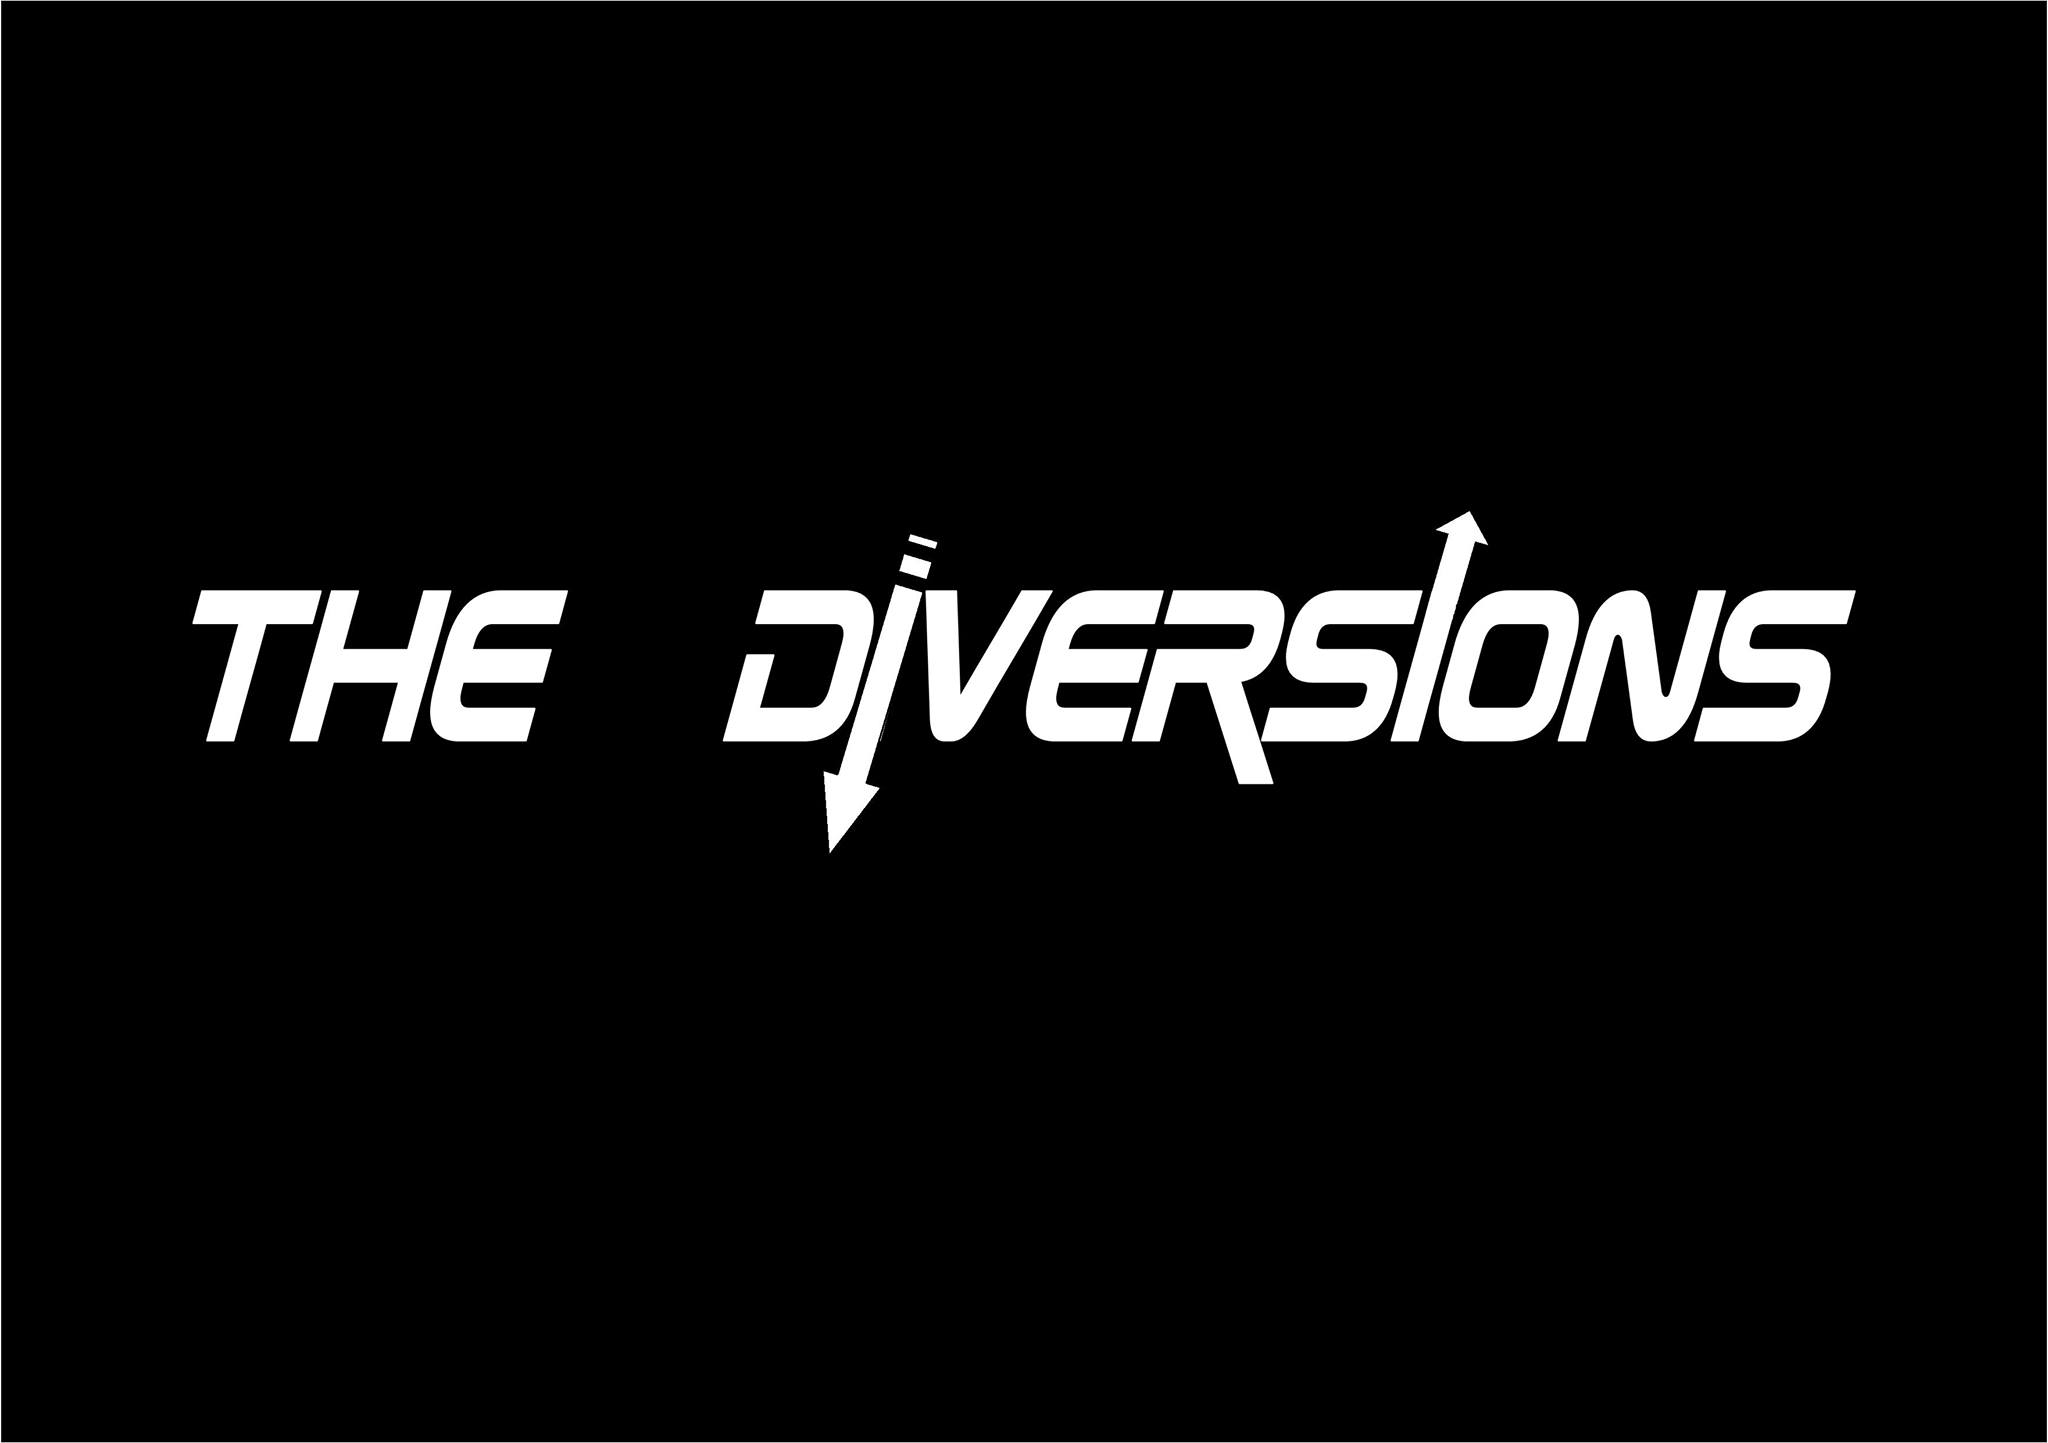 THE DIVERSIONS, 3 WISE MONKEYS, THE SHED